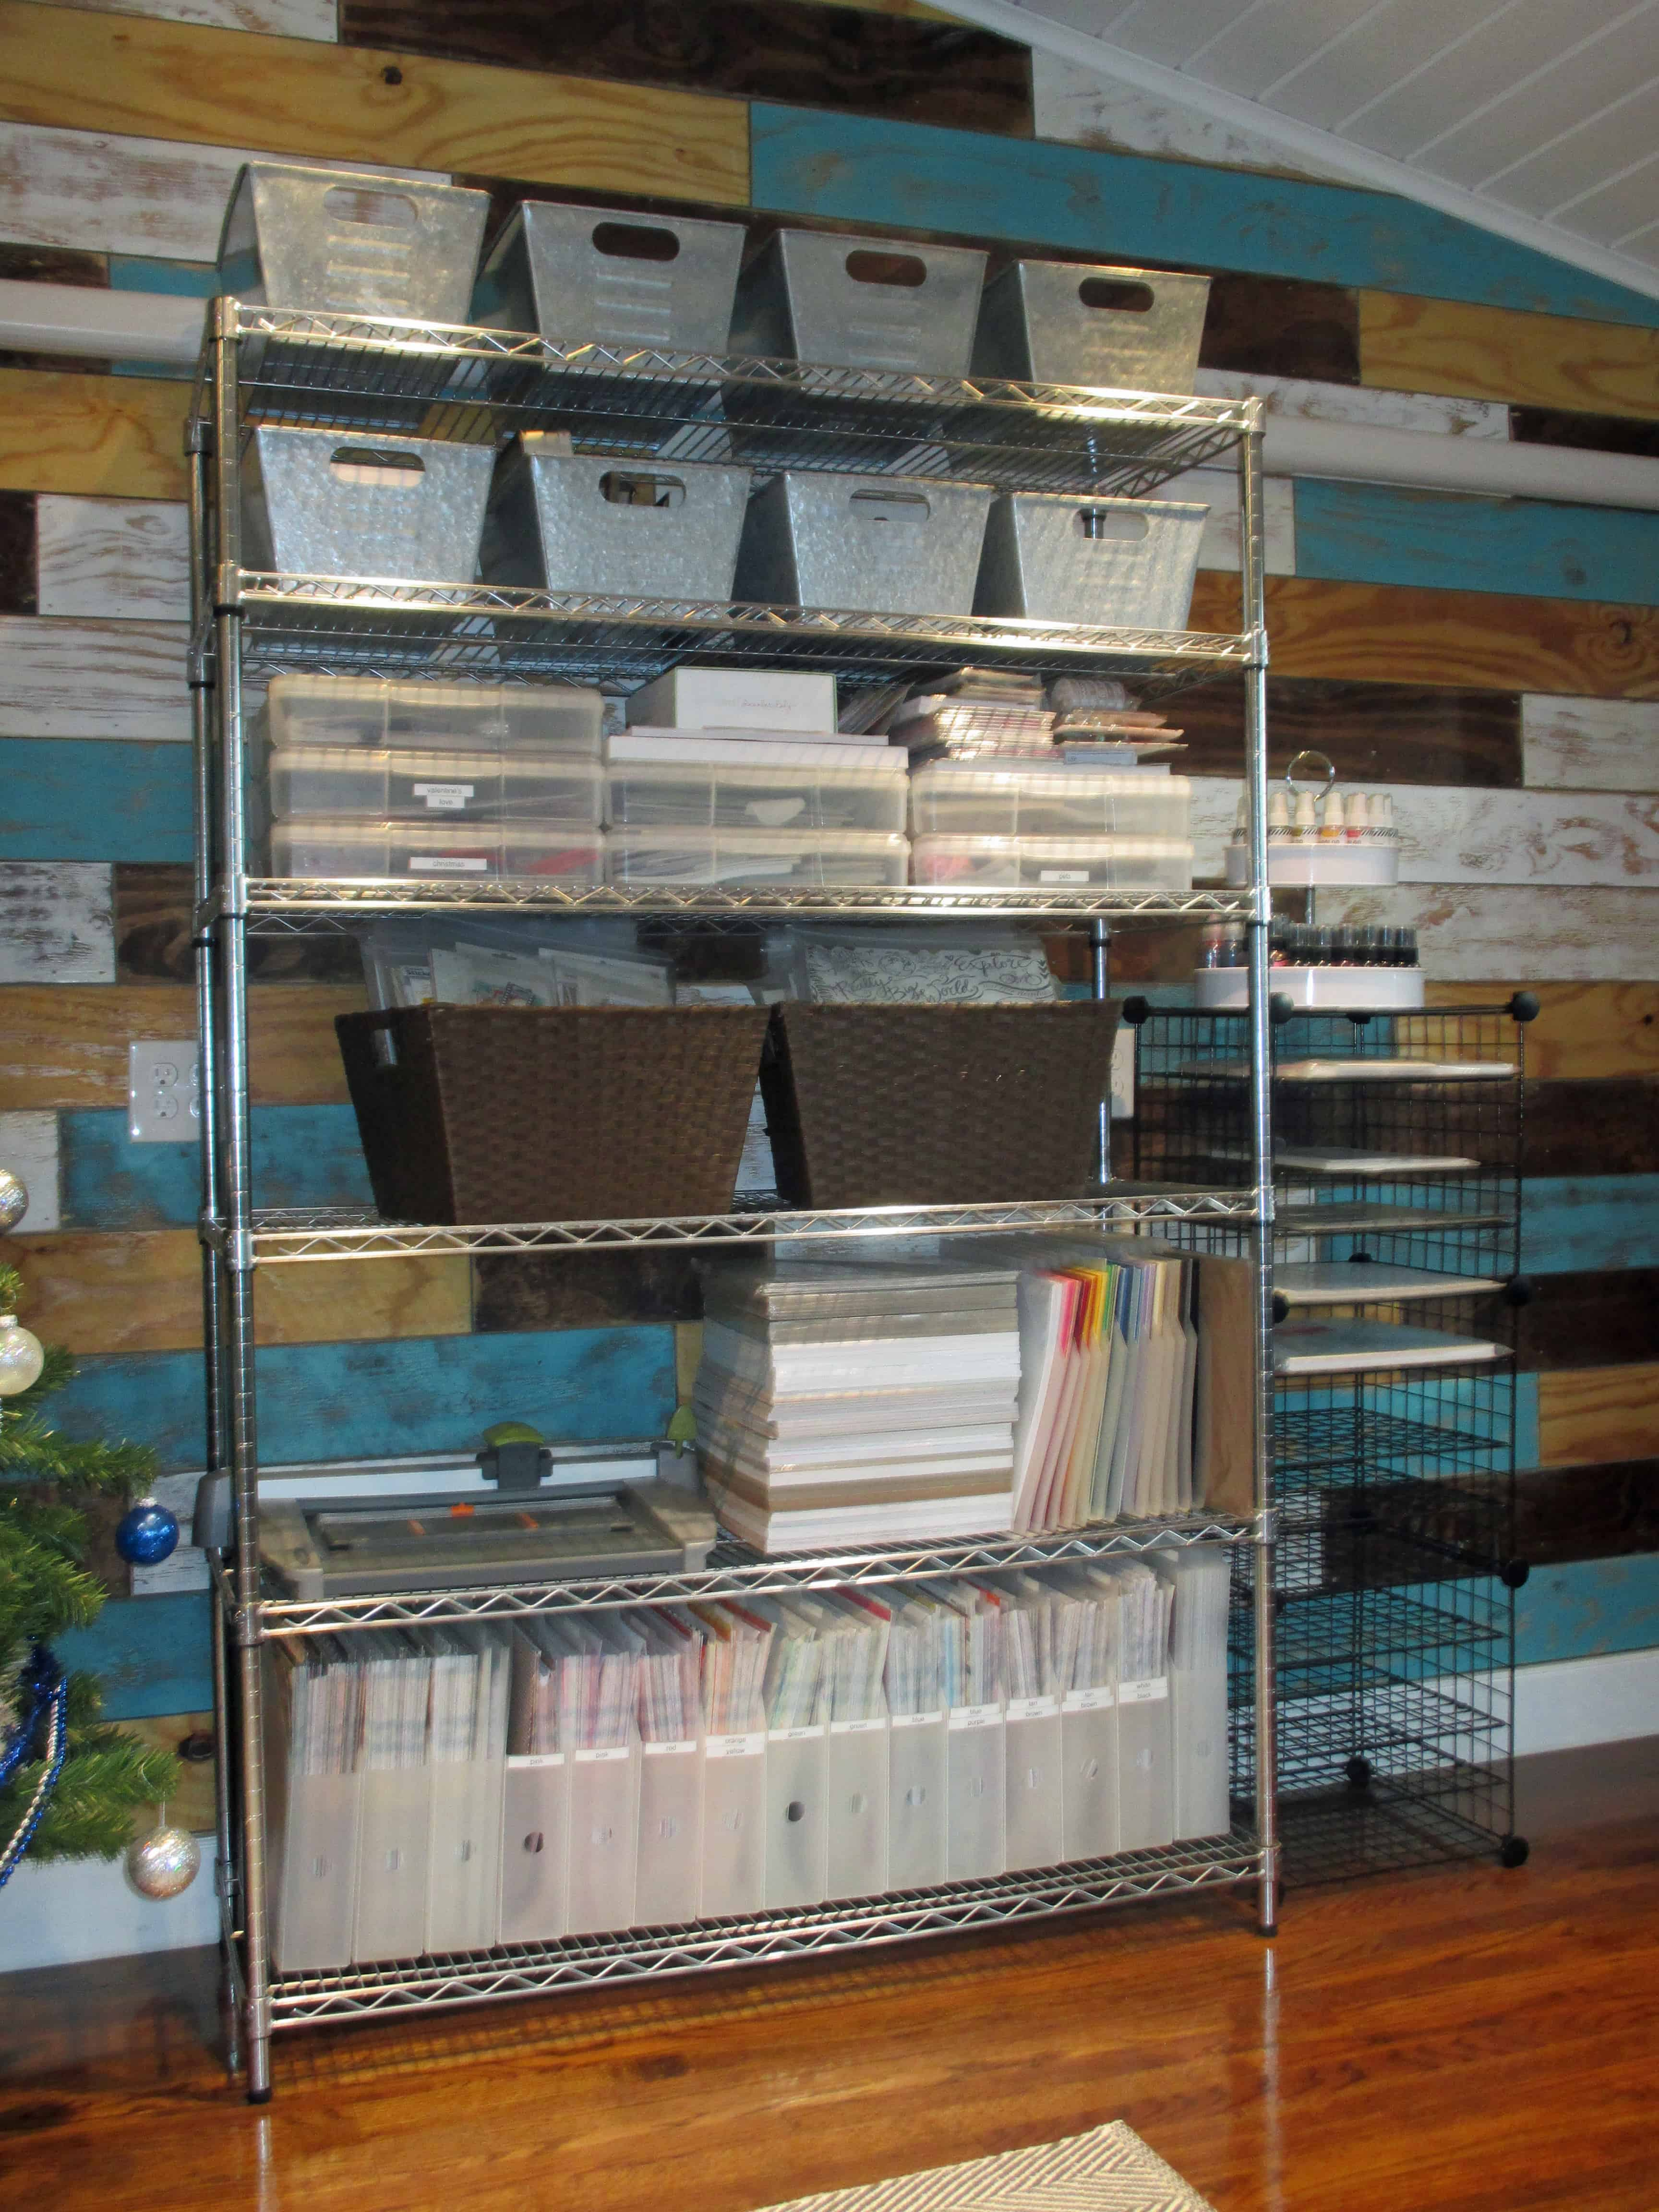 52 Weeks To An Organized Workspace – Solid Cardstock